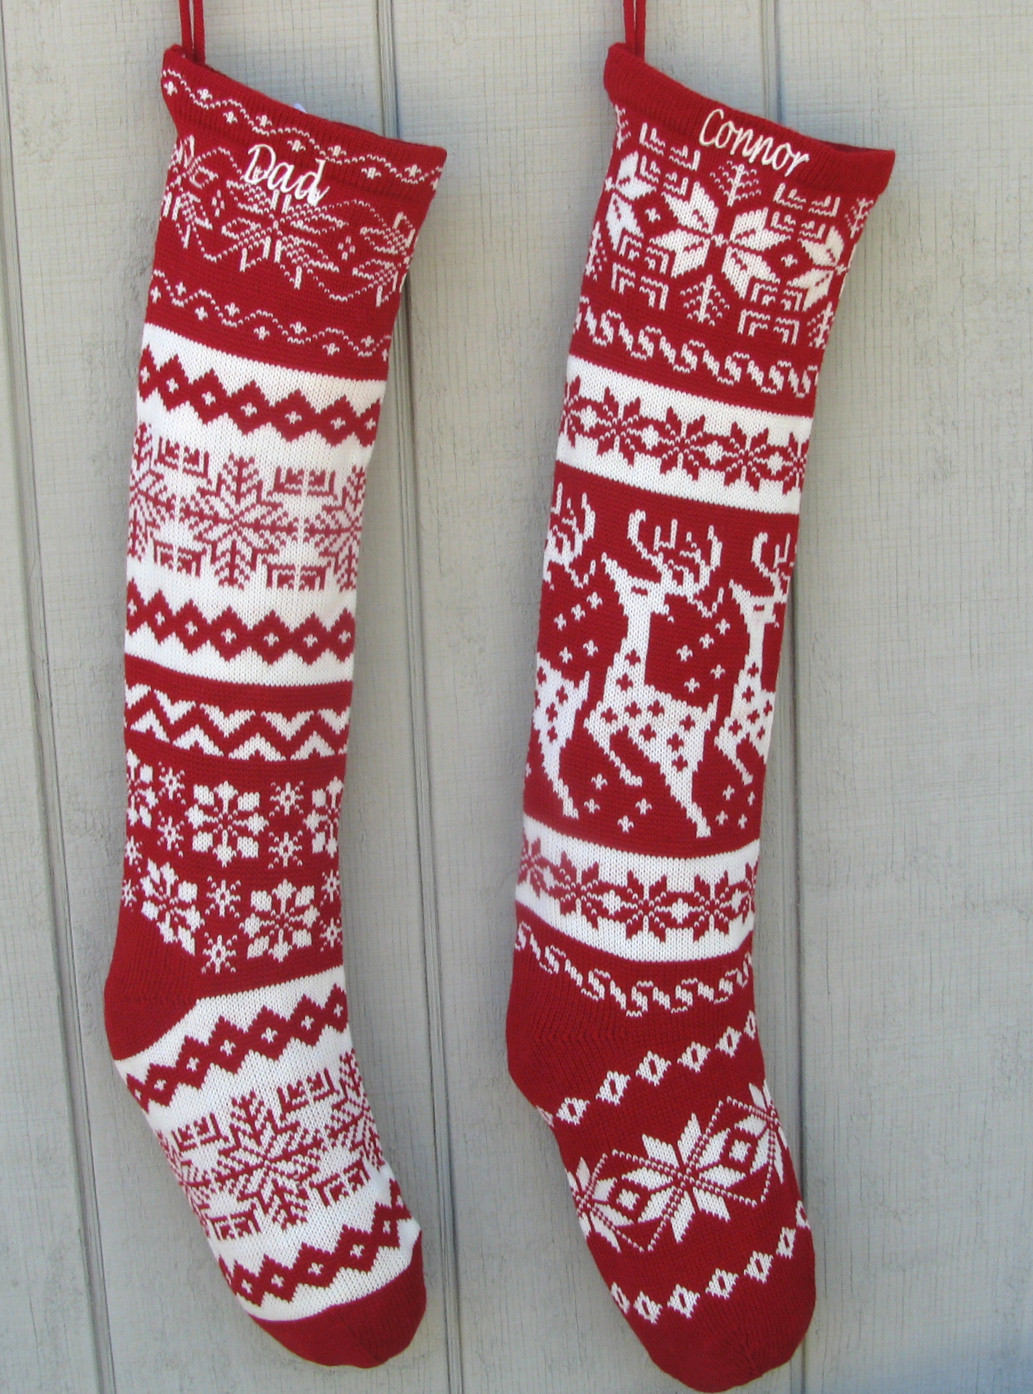 Stocking Pattern New Knitted Christmas Stockings Red White Of New 44 Models Stocking Pattern